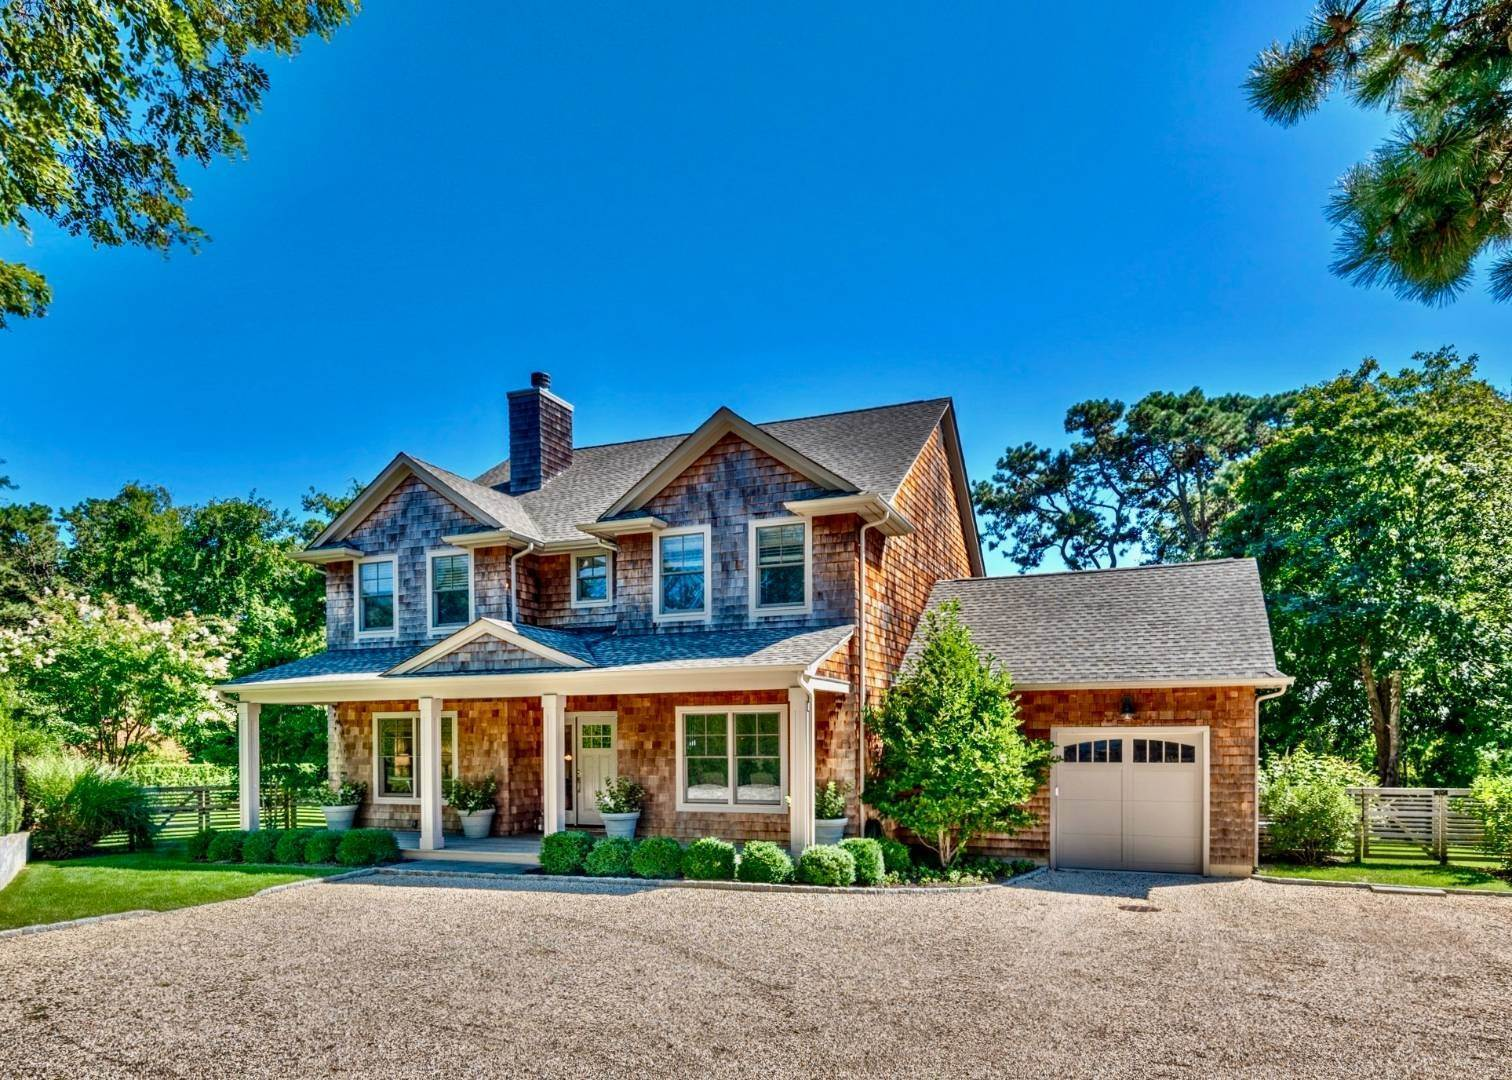 Single Family Home pour l Vente à Southampton - South Of The Highway 276 Montauk Highway, Southampton, NY 11968